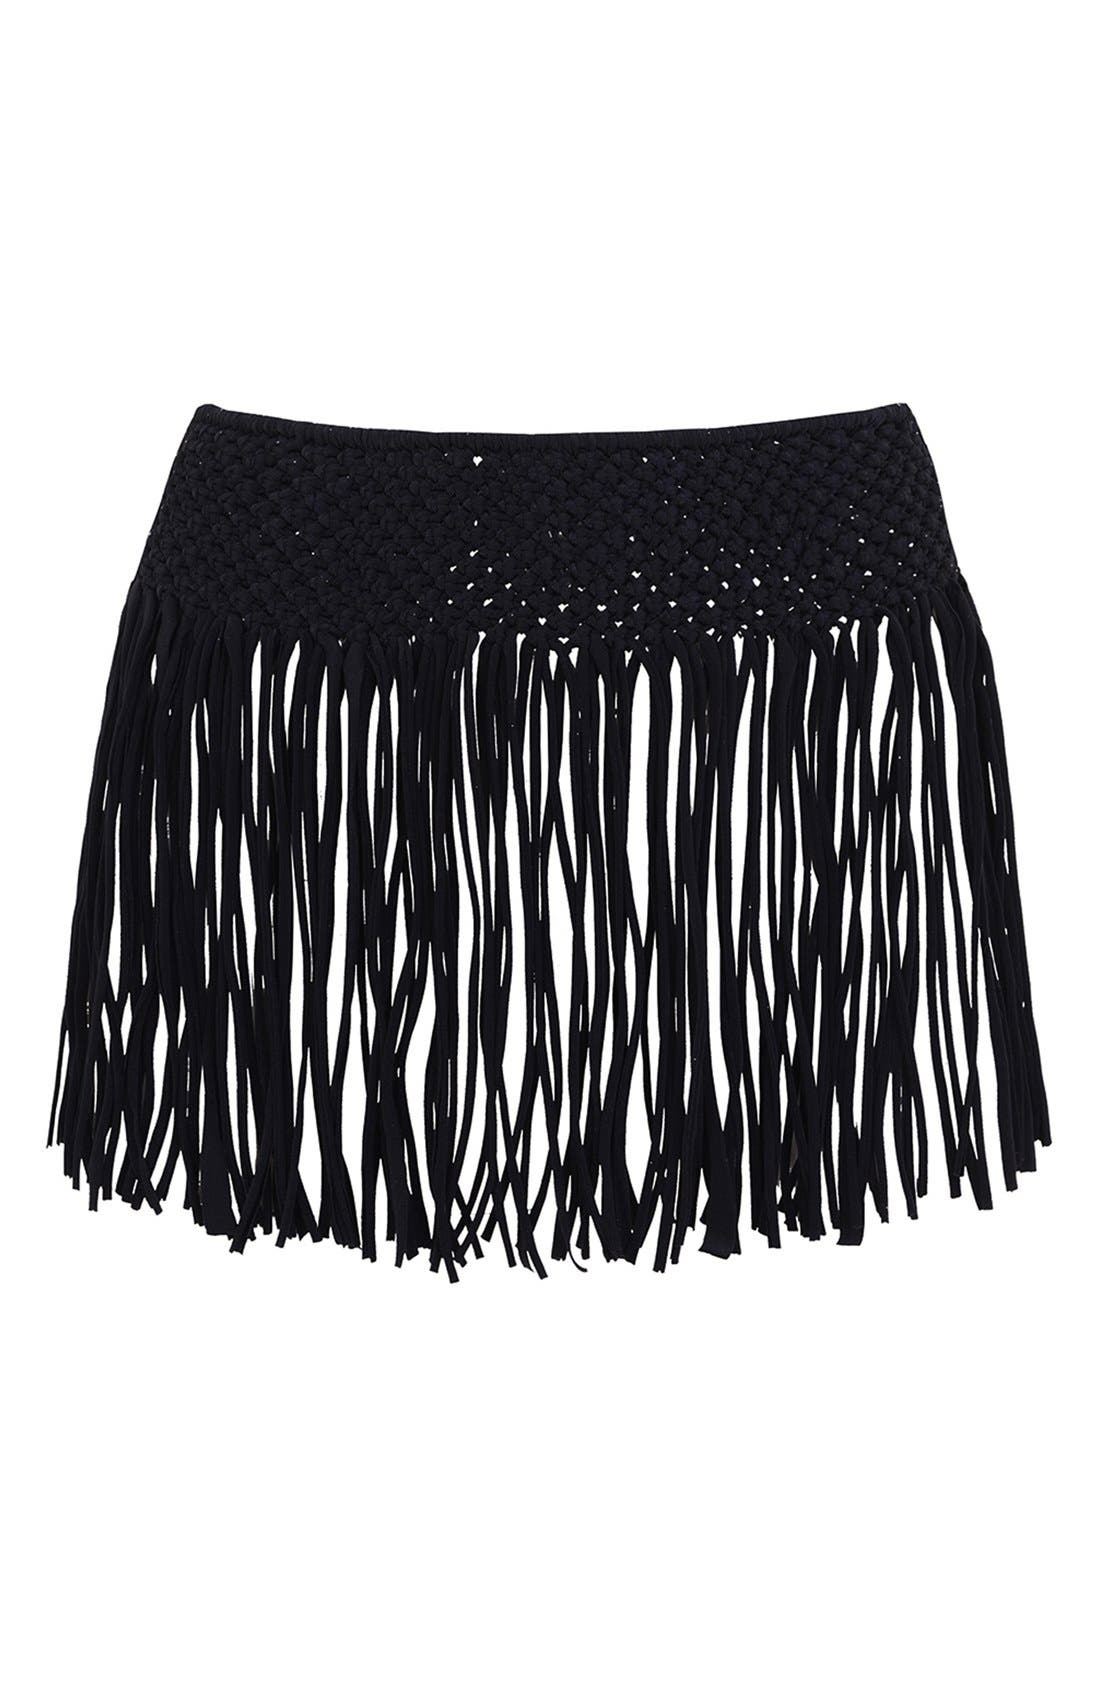 Main Image - KENDALL + KYLIE at Topshop Macramé Fringe Cover-Up Skirt